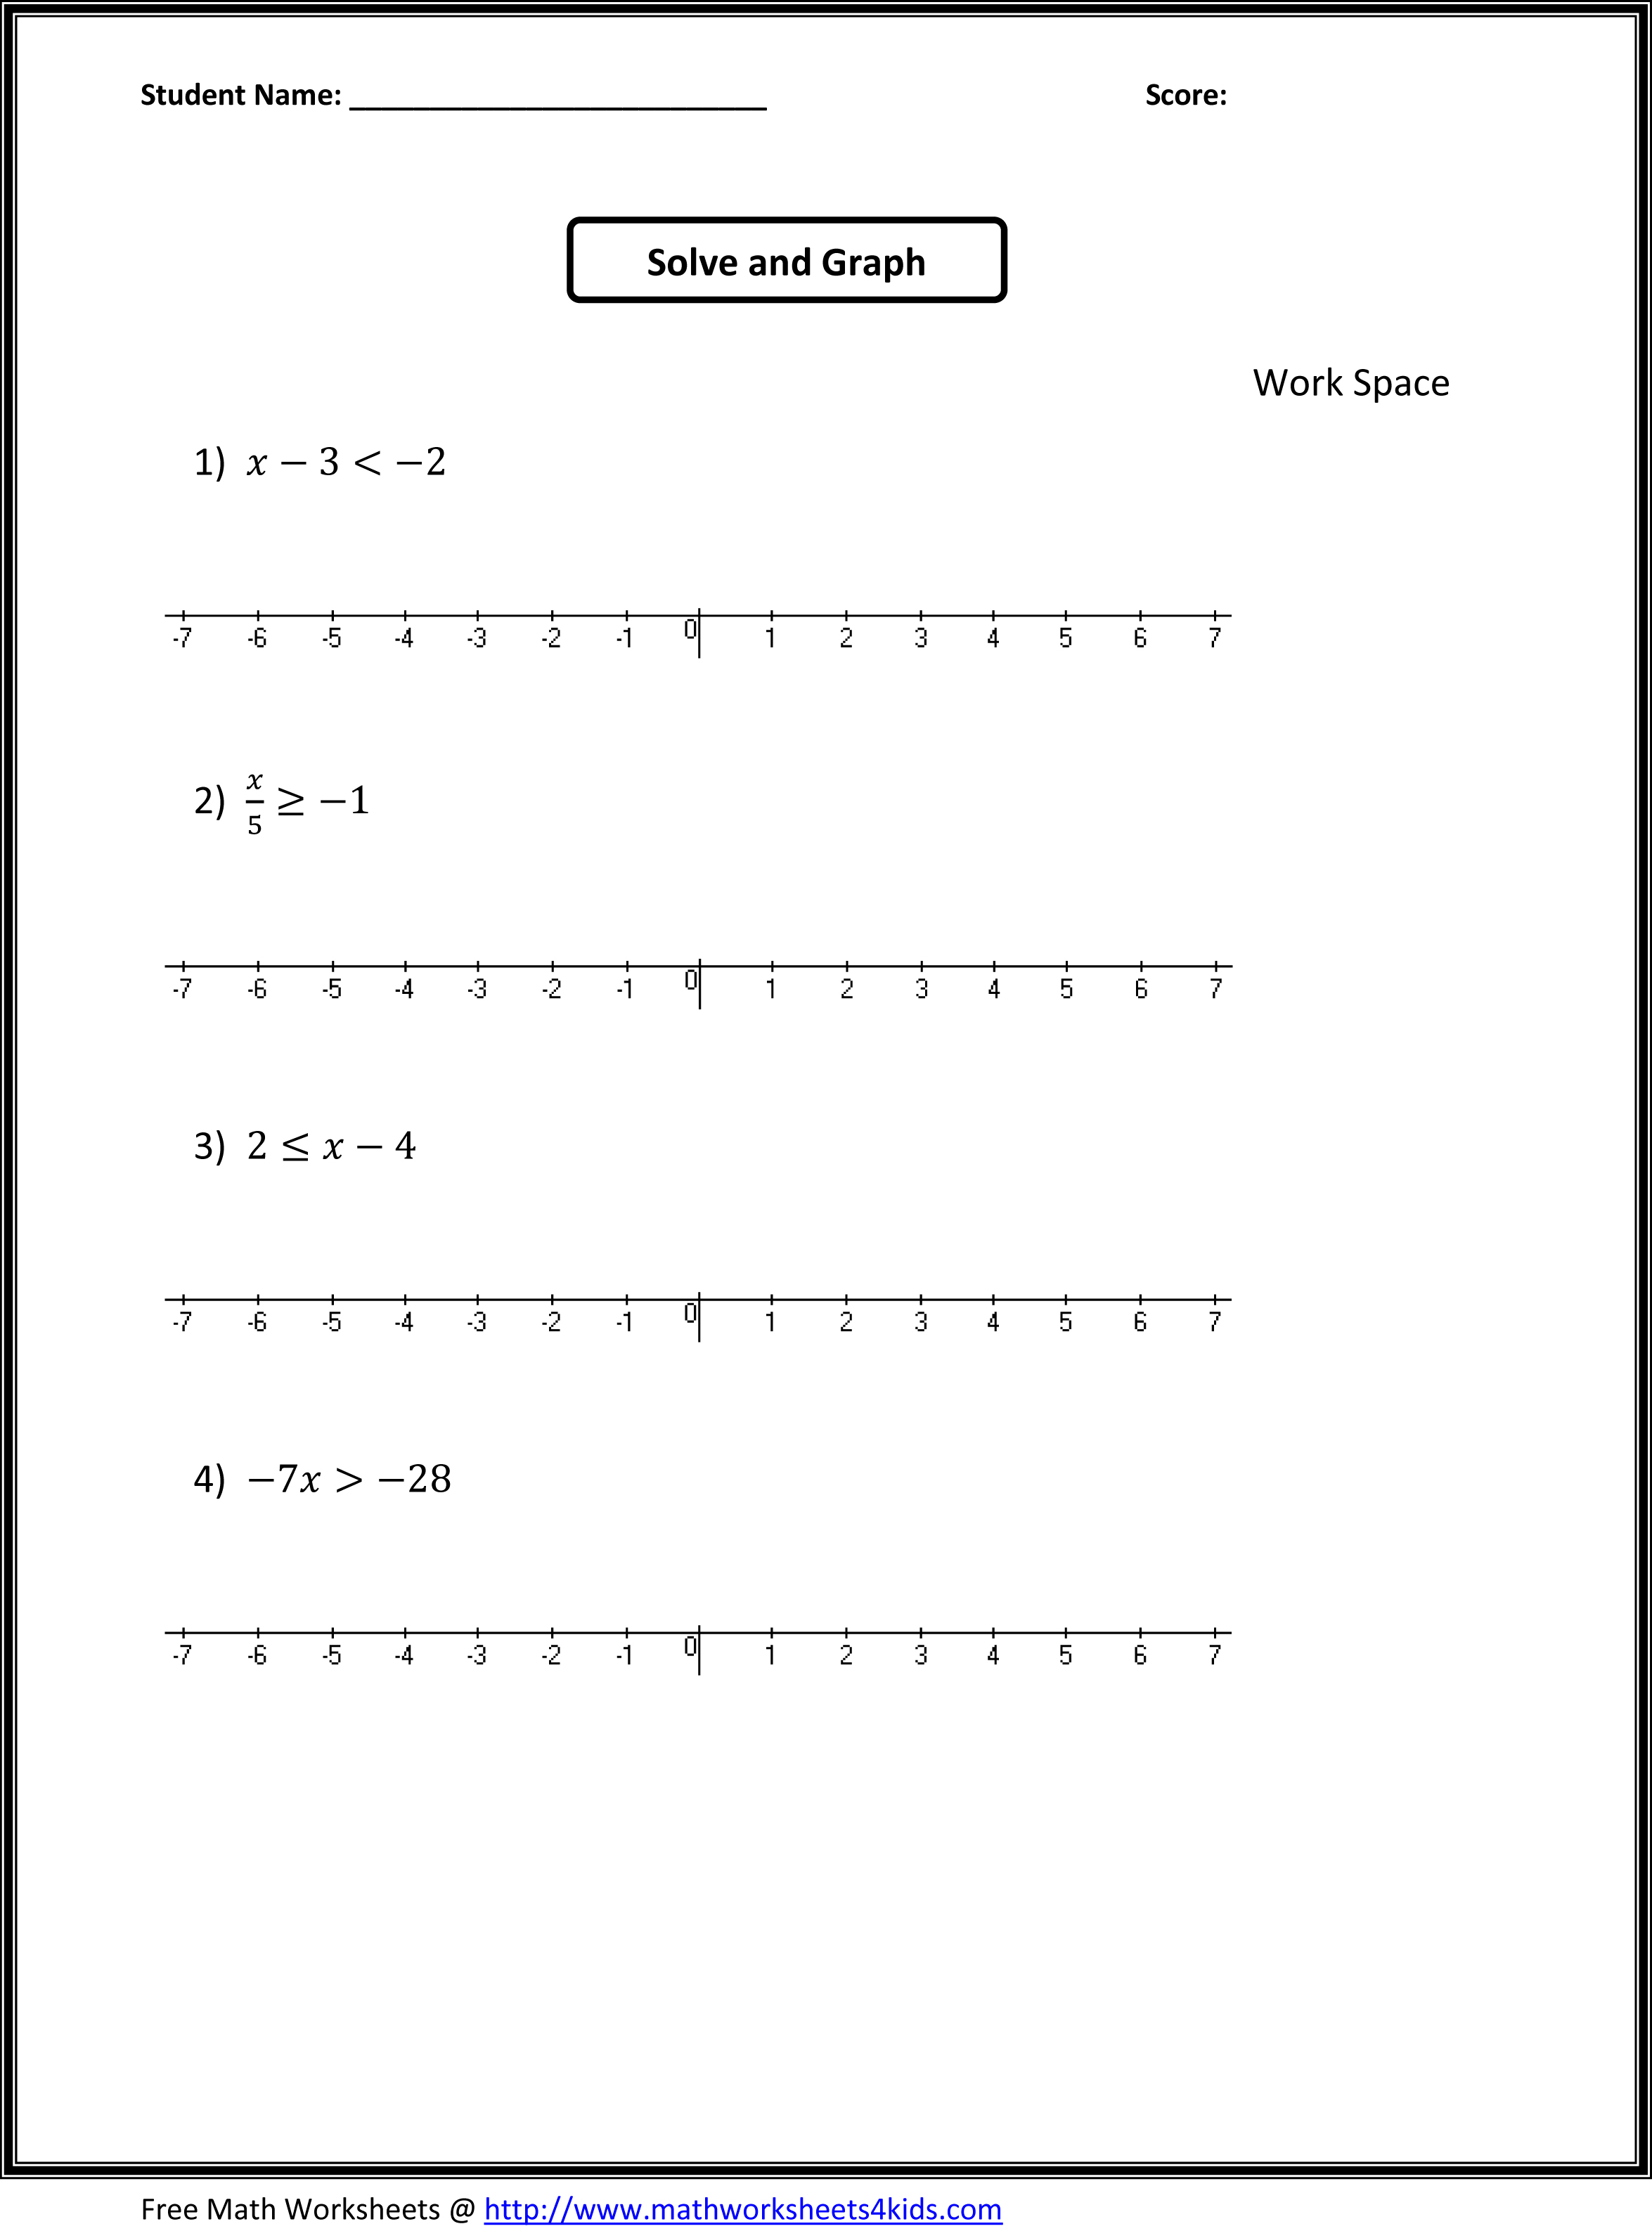 Pythagorean Theorem Worksheets Grade 9 – Math Worksheets for Grade 9